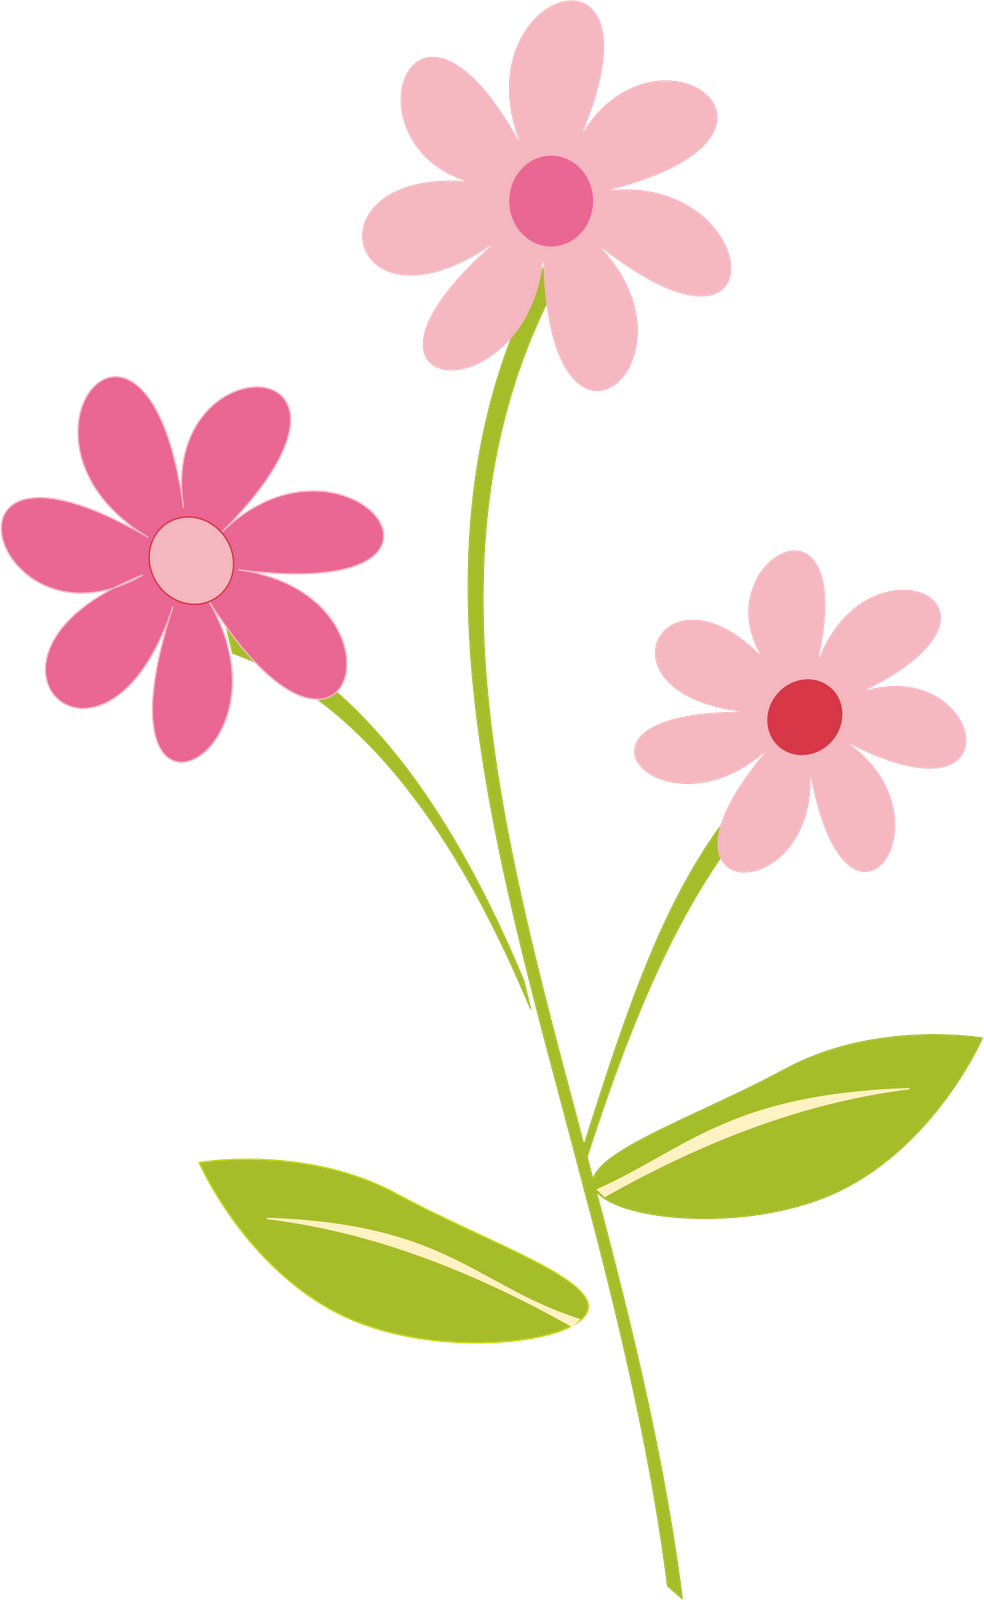 984x1600 Flower Png Clipart